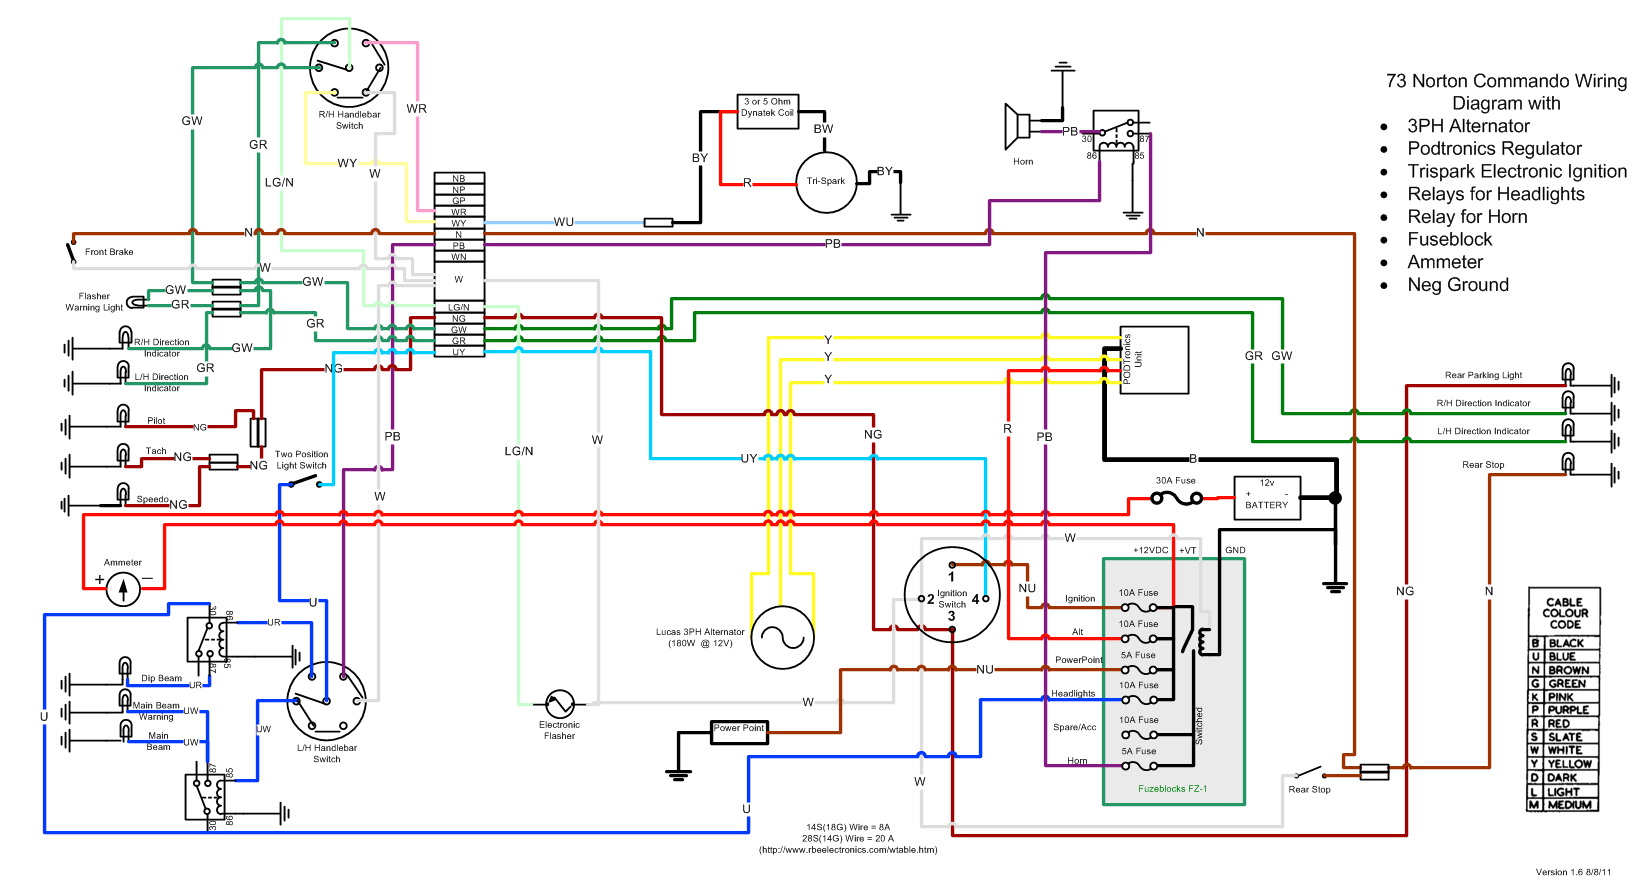 nissan ecu wiring diagram with Wiring Lights Diagram For International Dt4300 Series on Nissan Pulsar Gtir Wiring Diagram in addition Idle Control furthermore Allison 3000 Wiring Diagram additionally Hummer H3 Trailer Wiring Harness likewise Showthread.